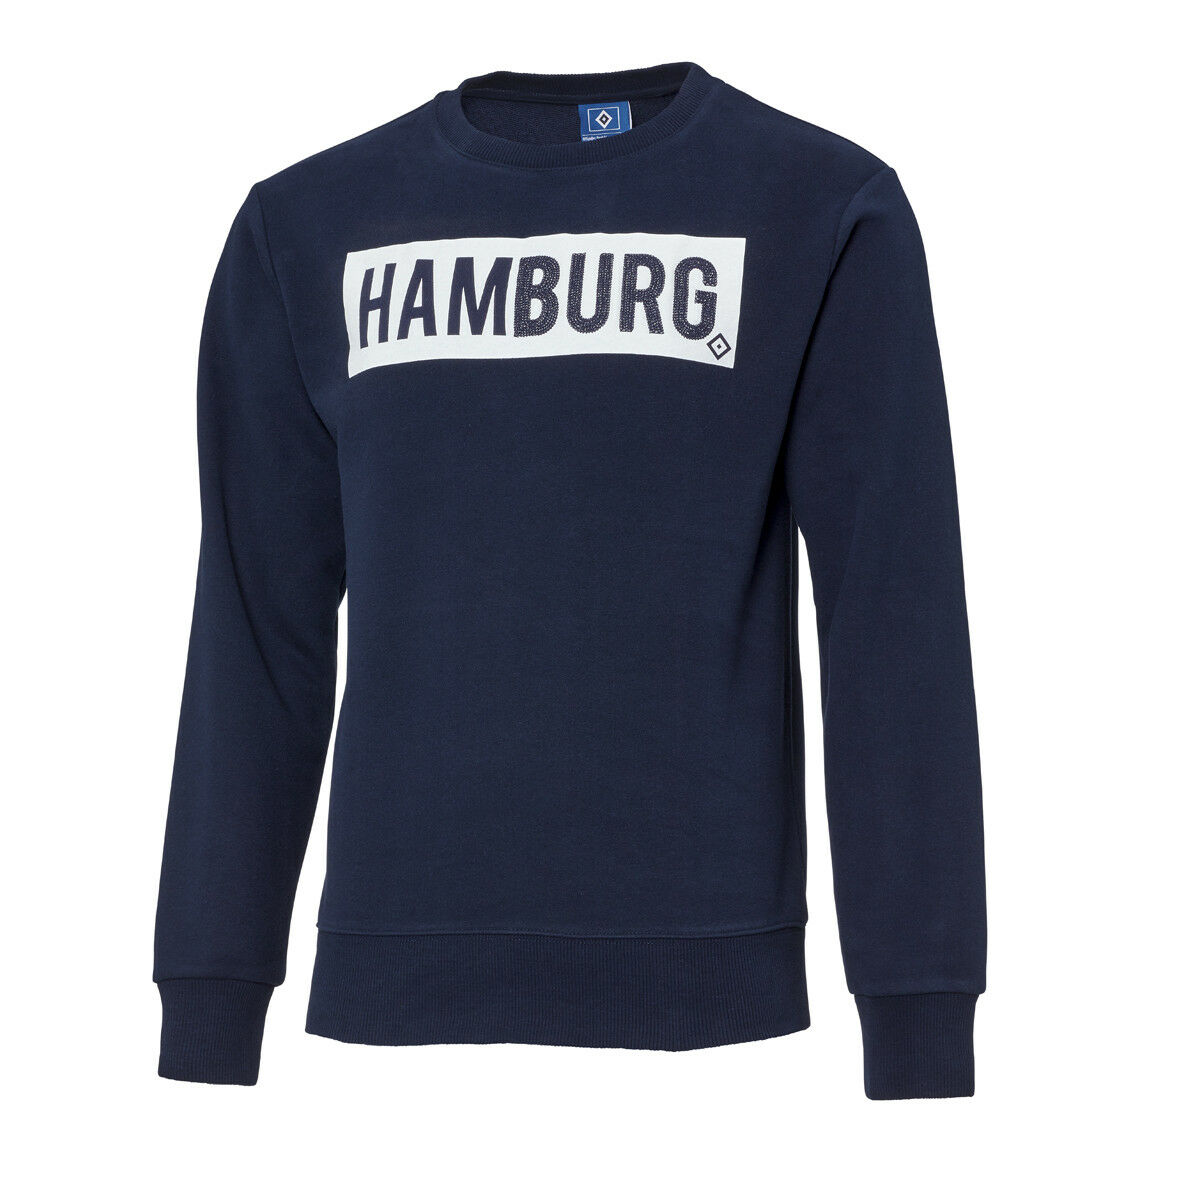 HSV Sweatshirt